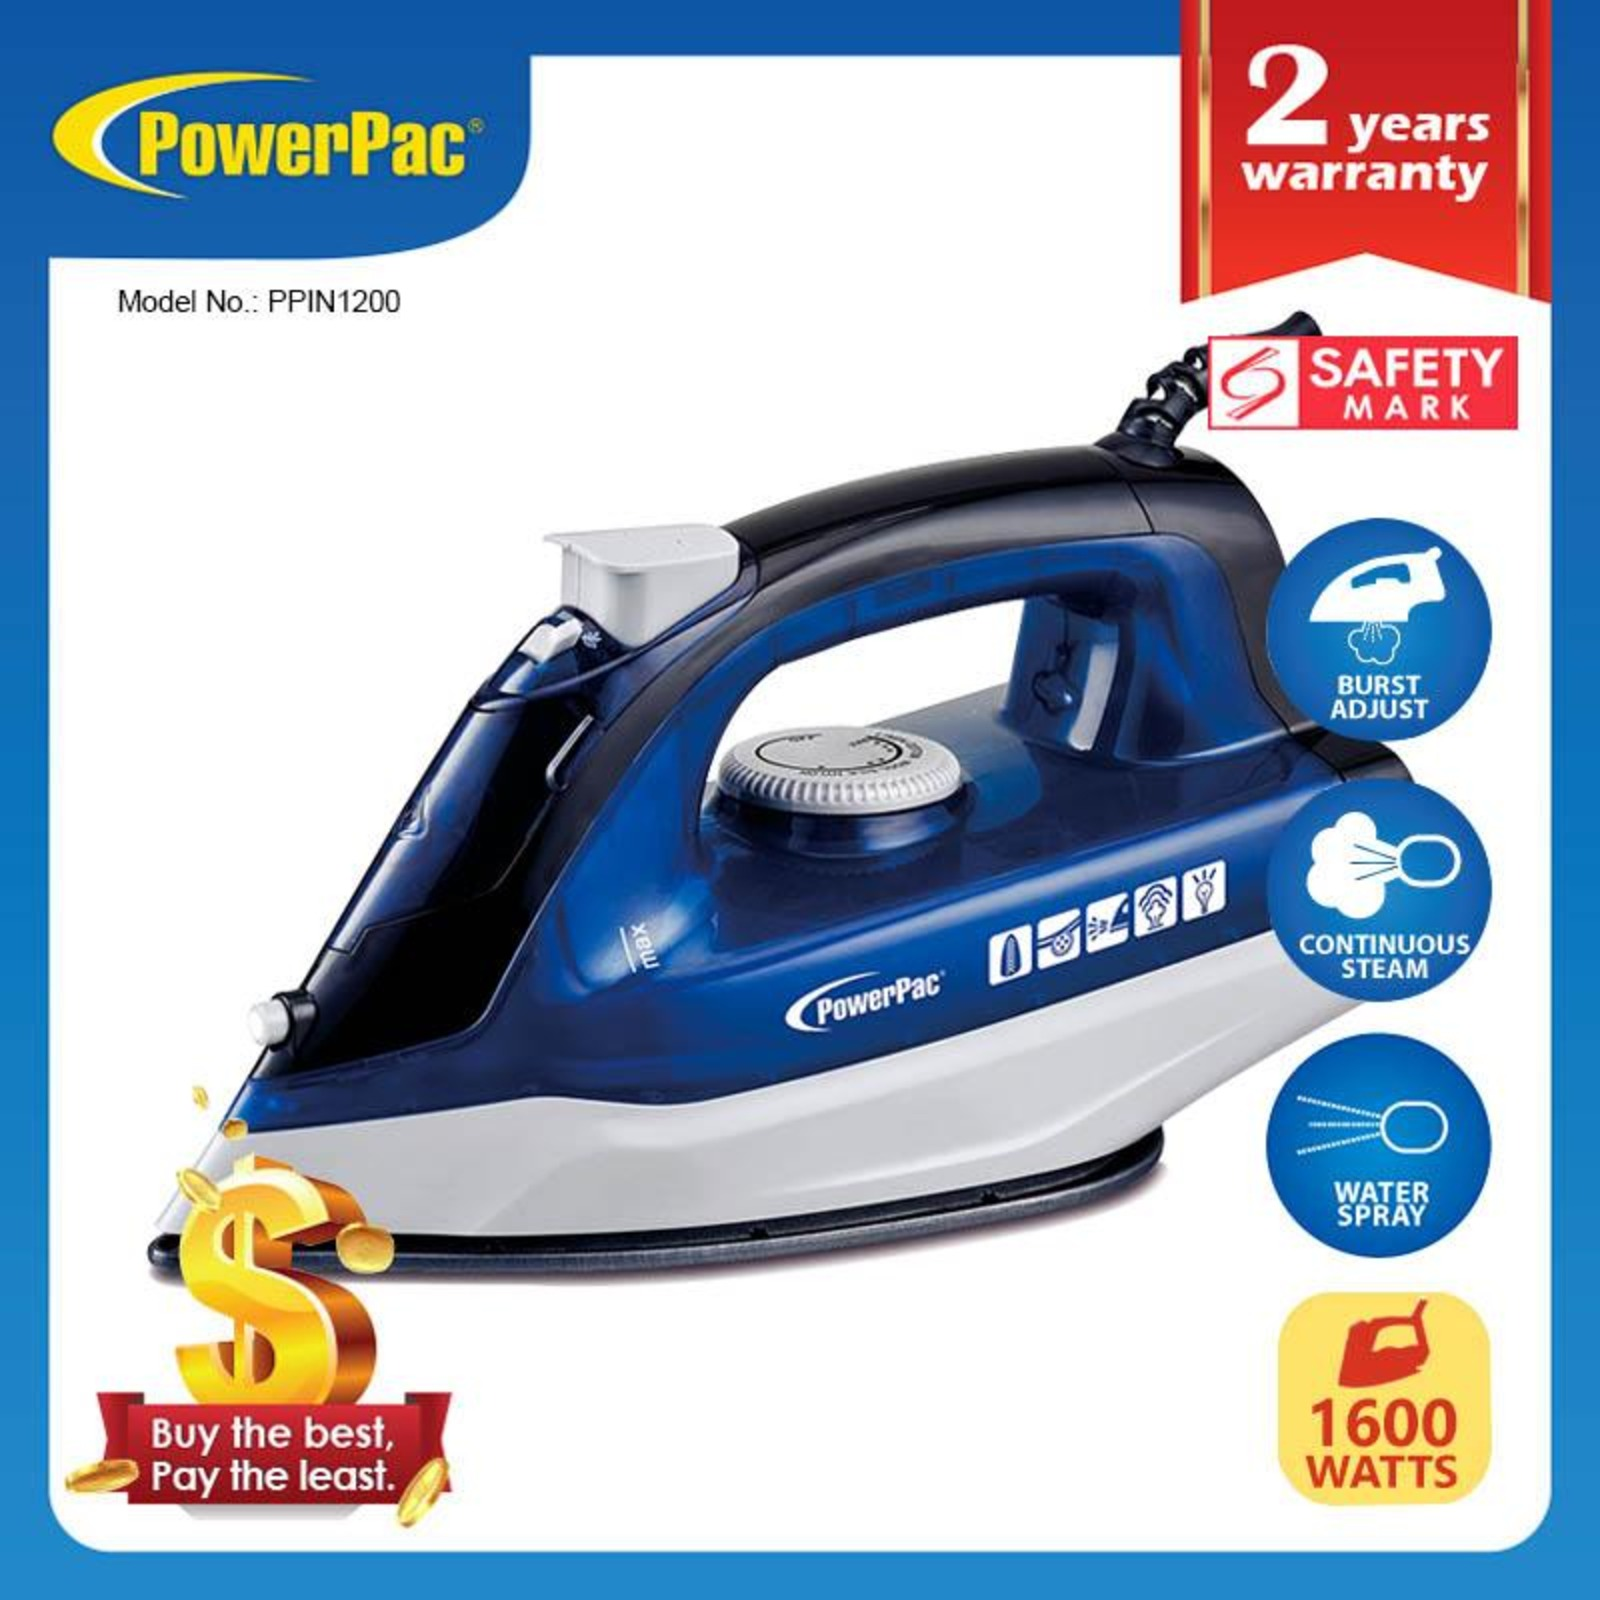 PowerPac (PPIN1200) Steam Iron